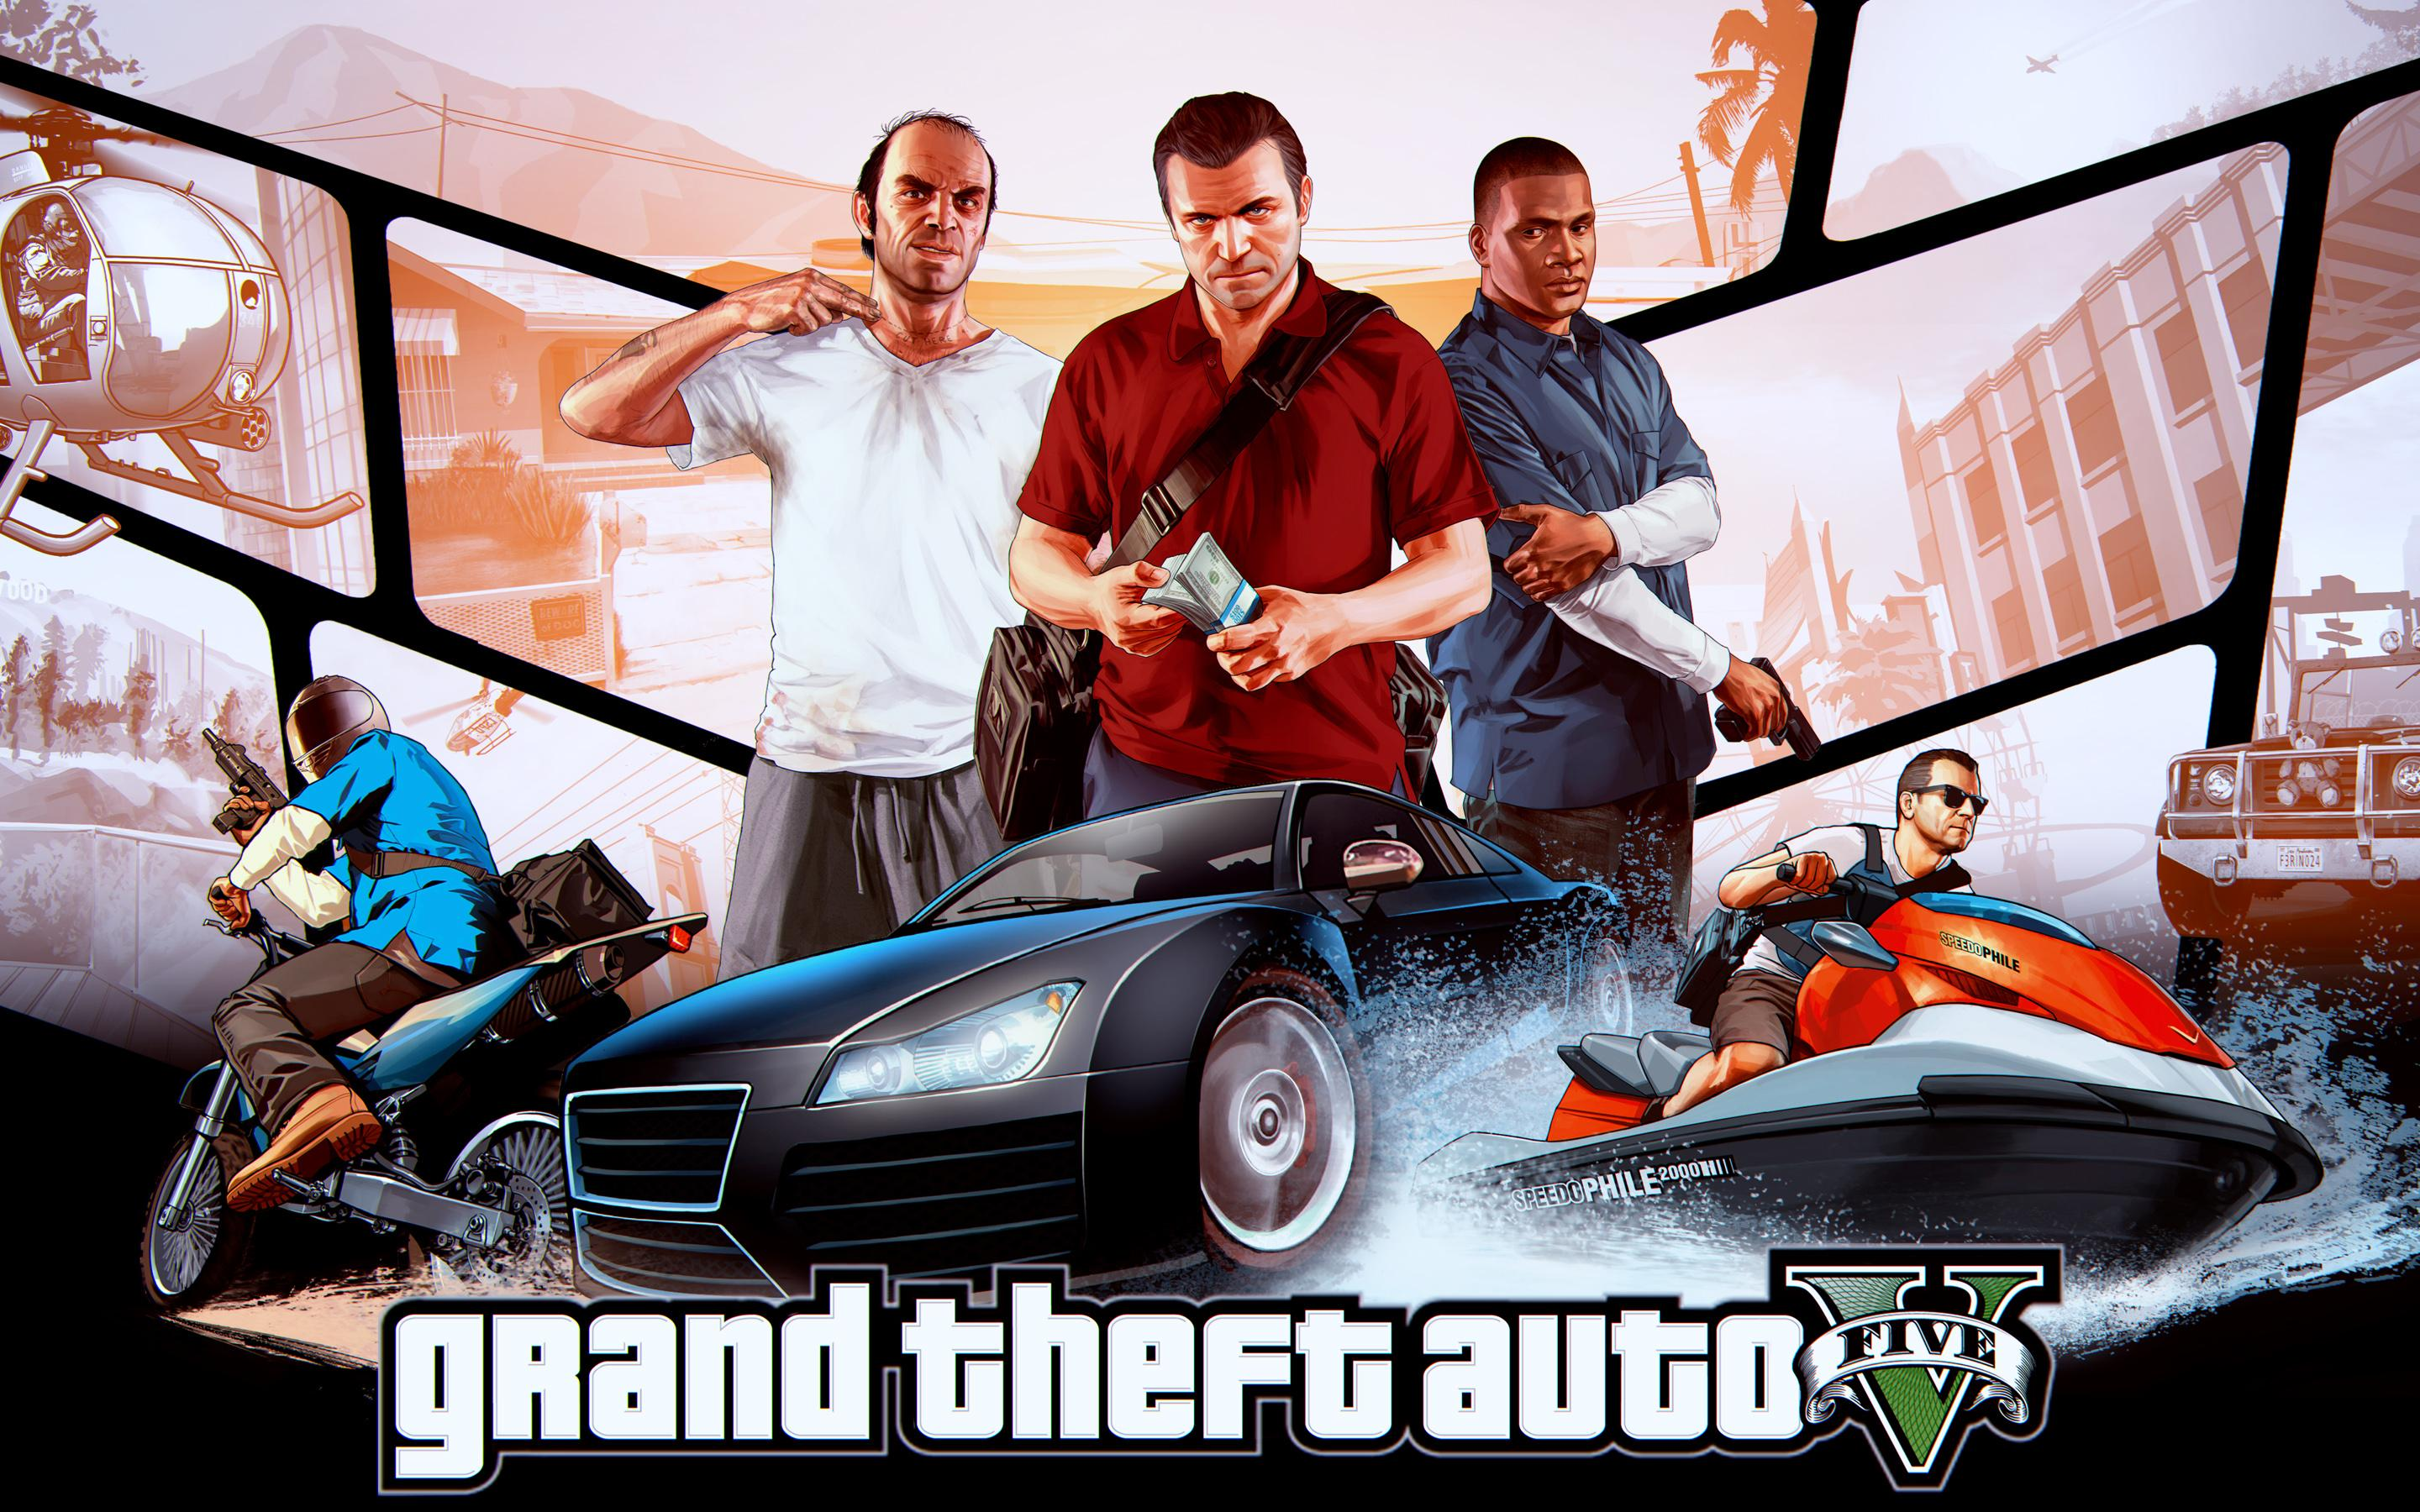 group of gta v online 2048x1152 gaming wallpaper youtube